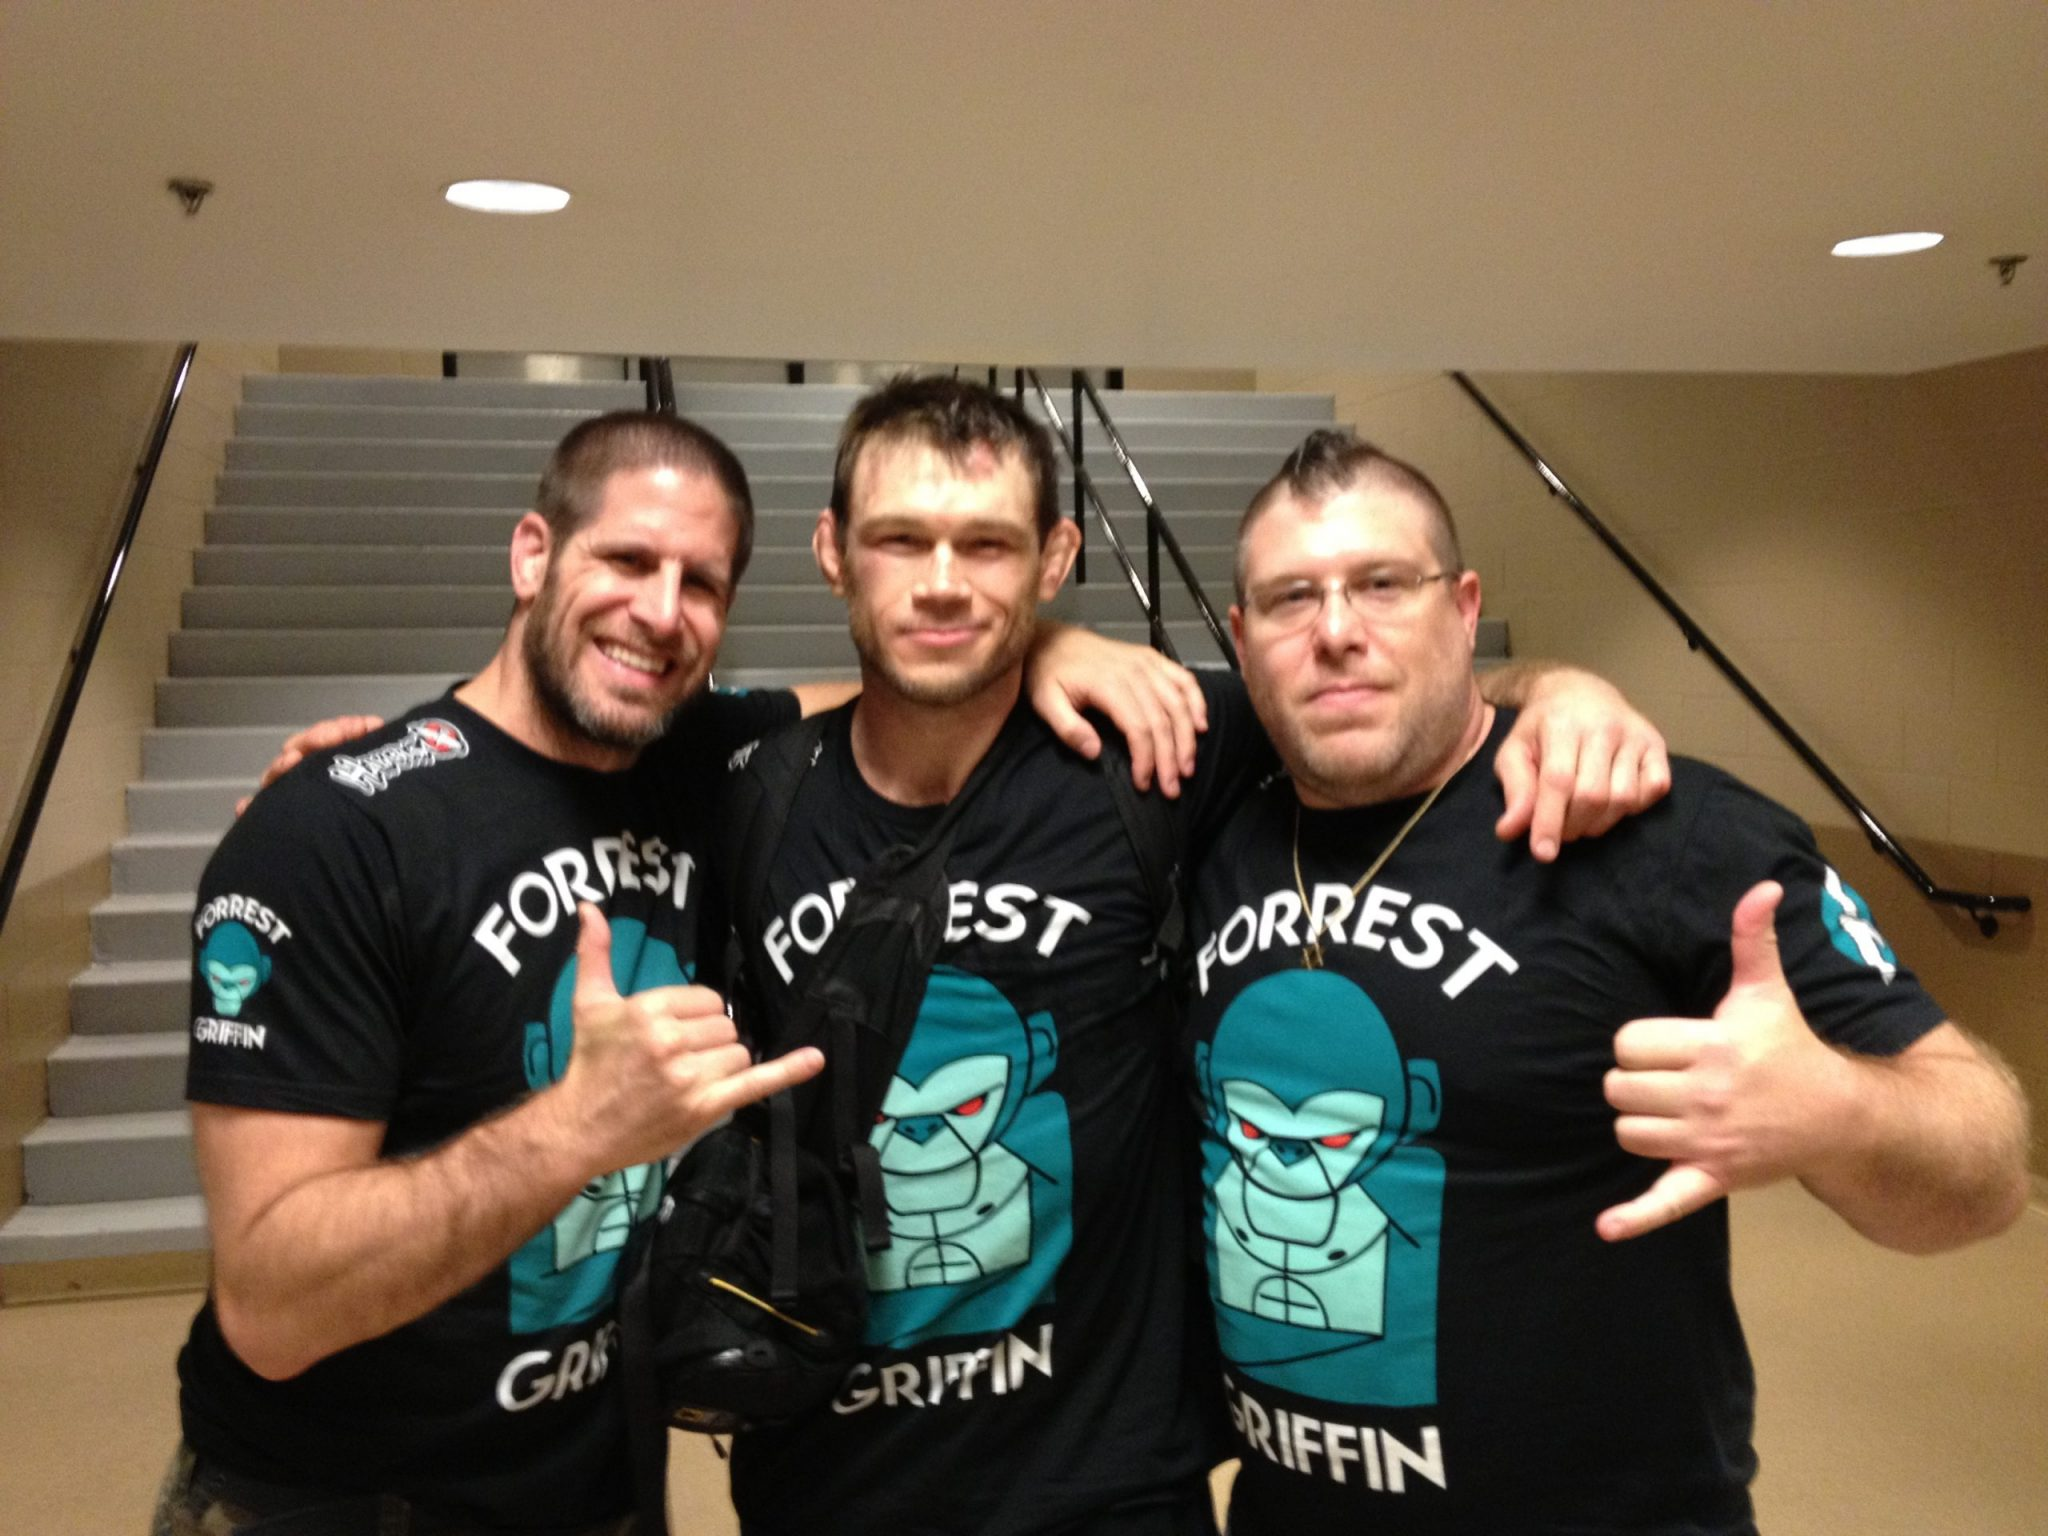 Forrest Griffin (UFC Champion) with Rory & Adam Singer of SBG Athens